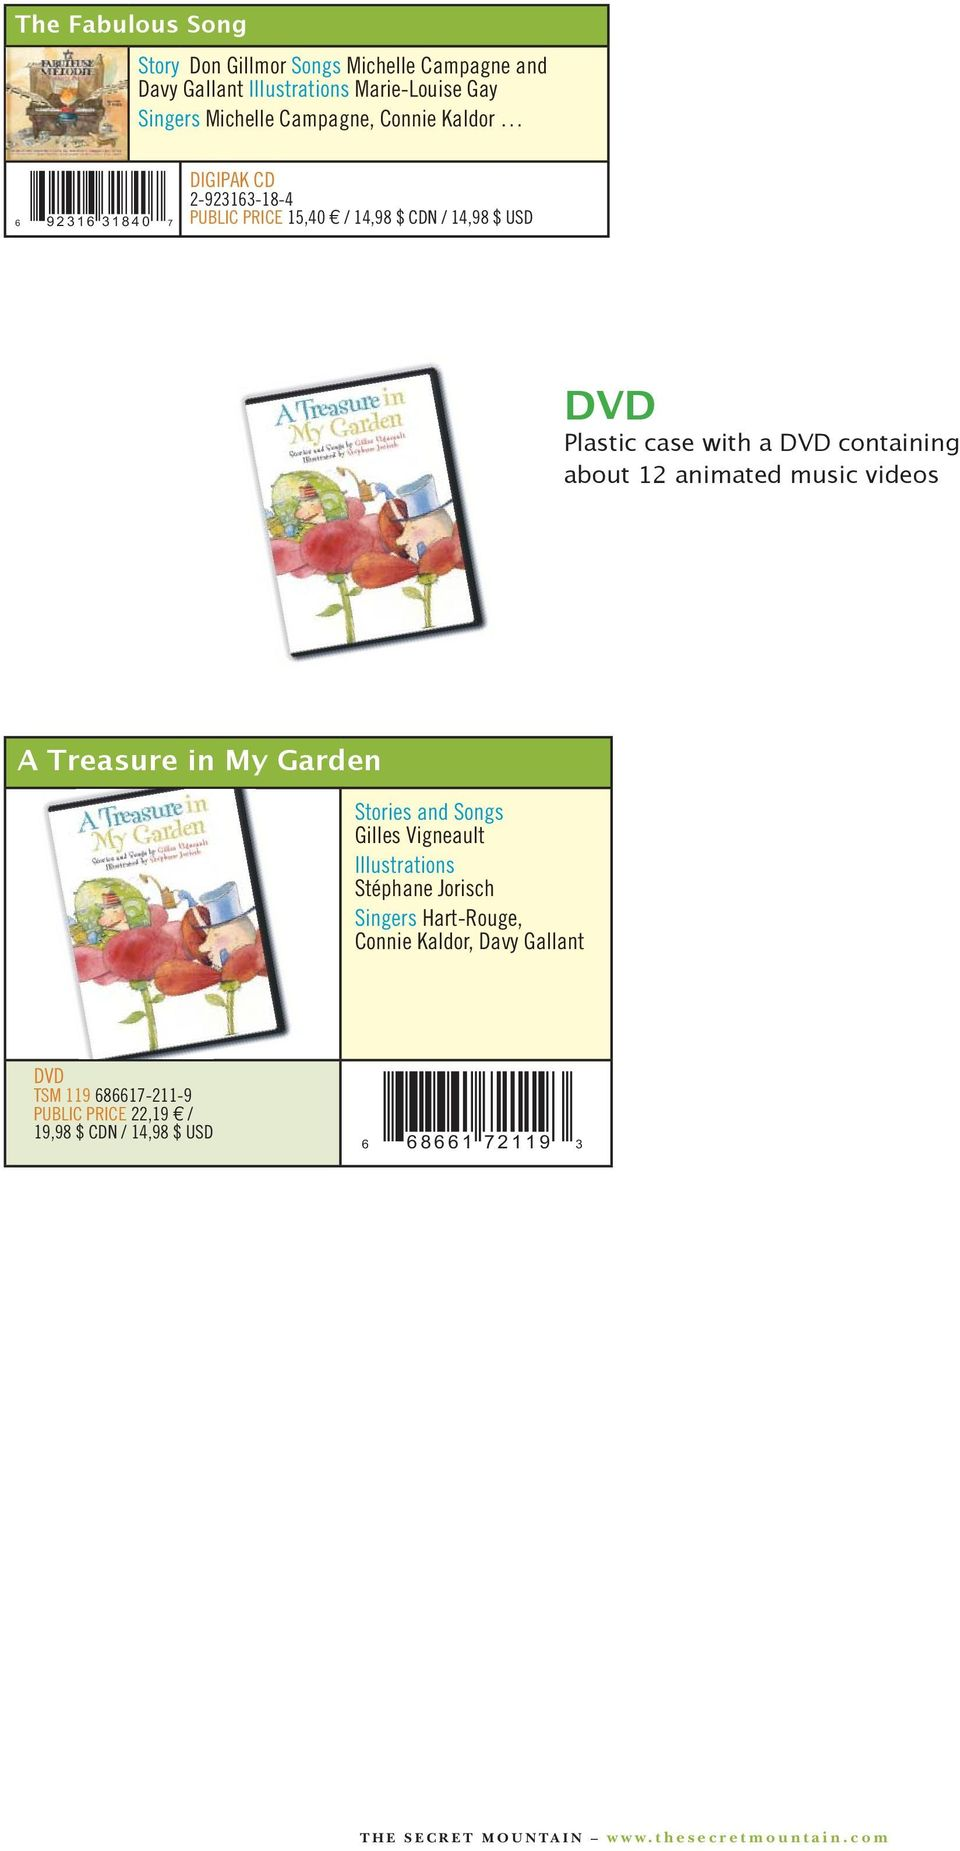 videos A Treasure in My Garden Stories and Hart-Rouge, Connie Kaldor, Davy Gallant TSM 119 686617-211-9